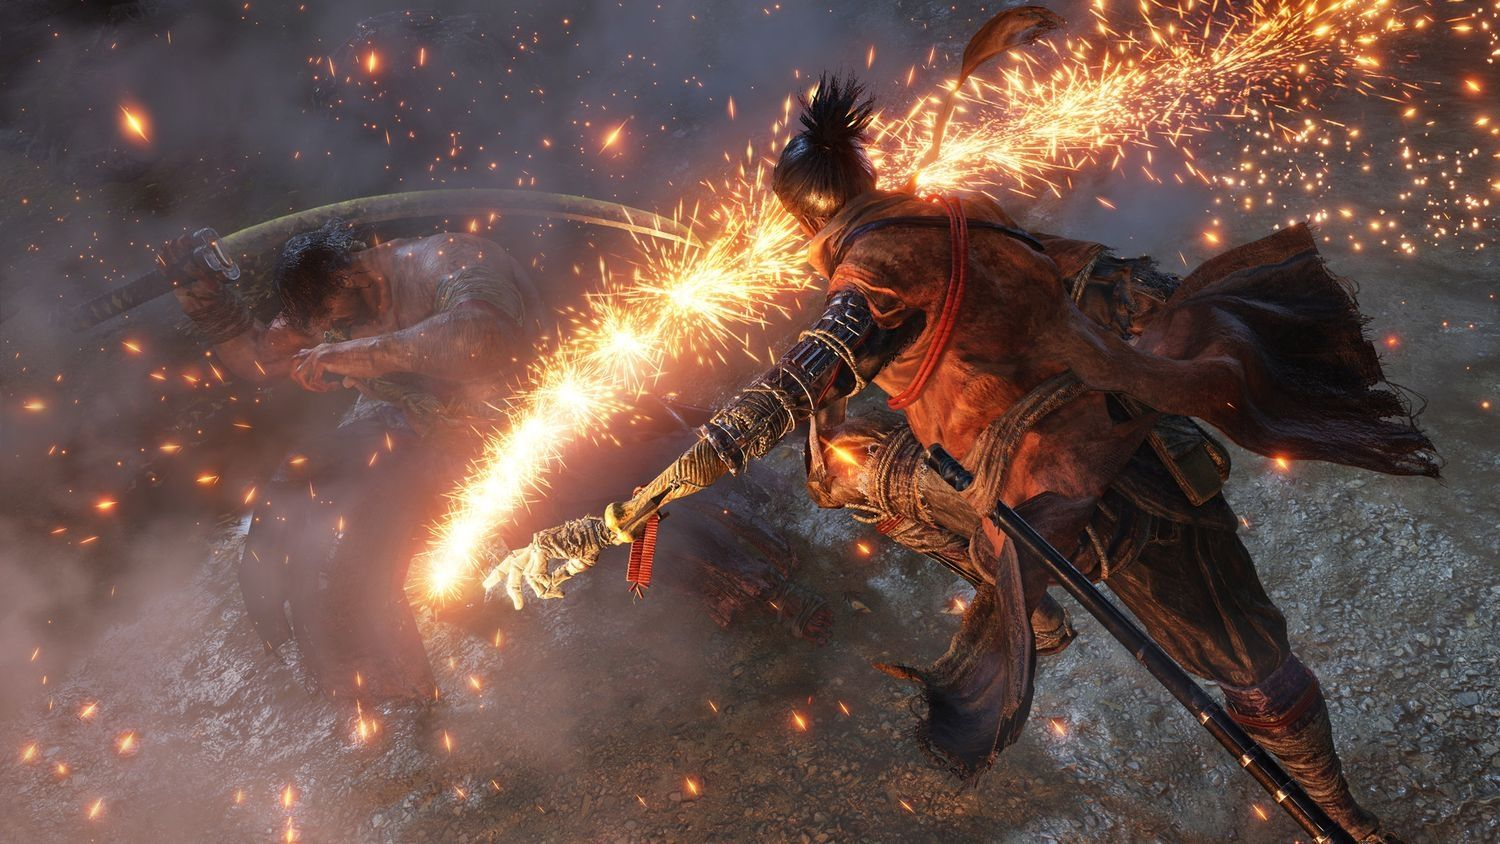 Sekiro: Shadows die twice (Xbox One) - 9